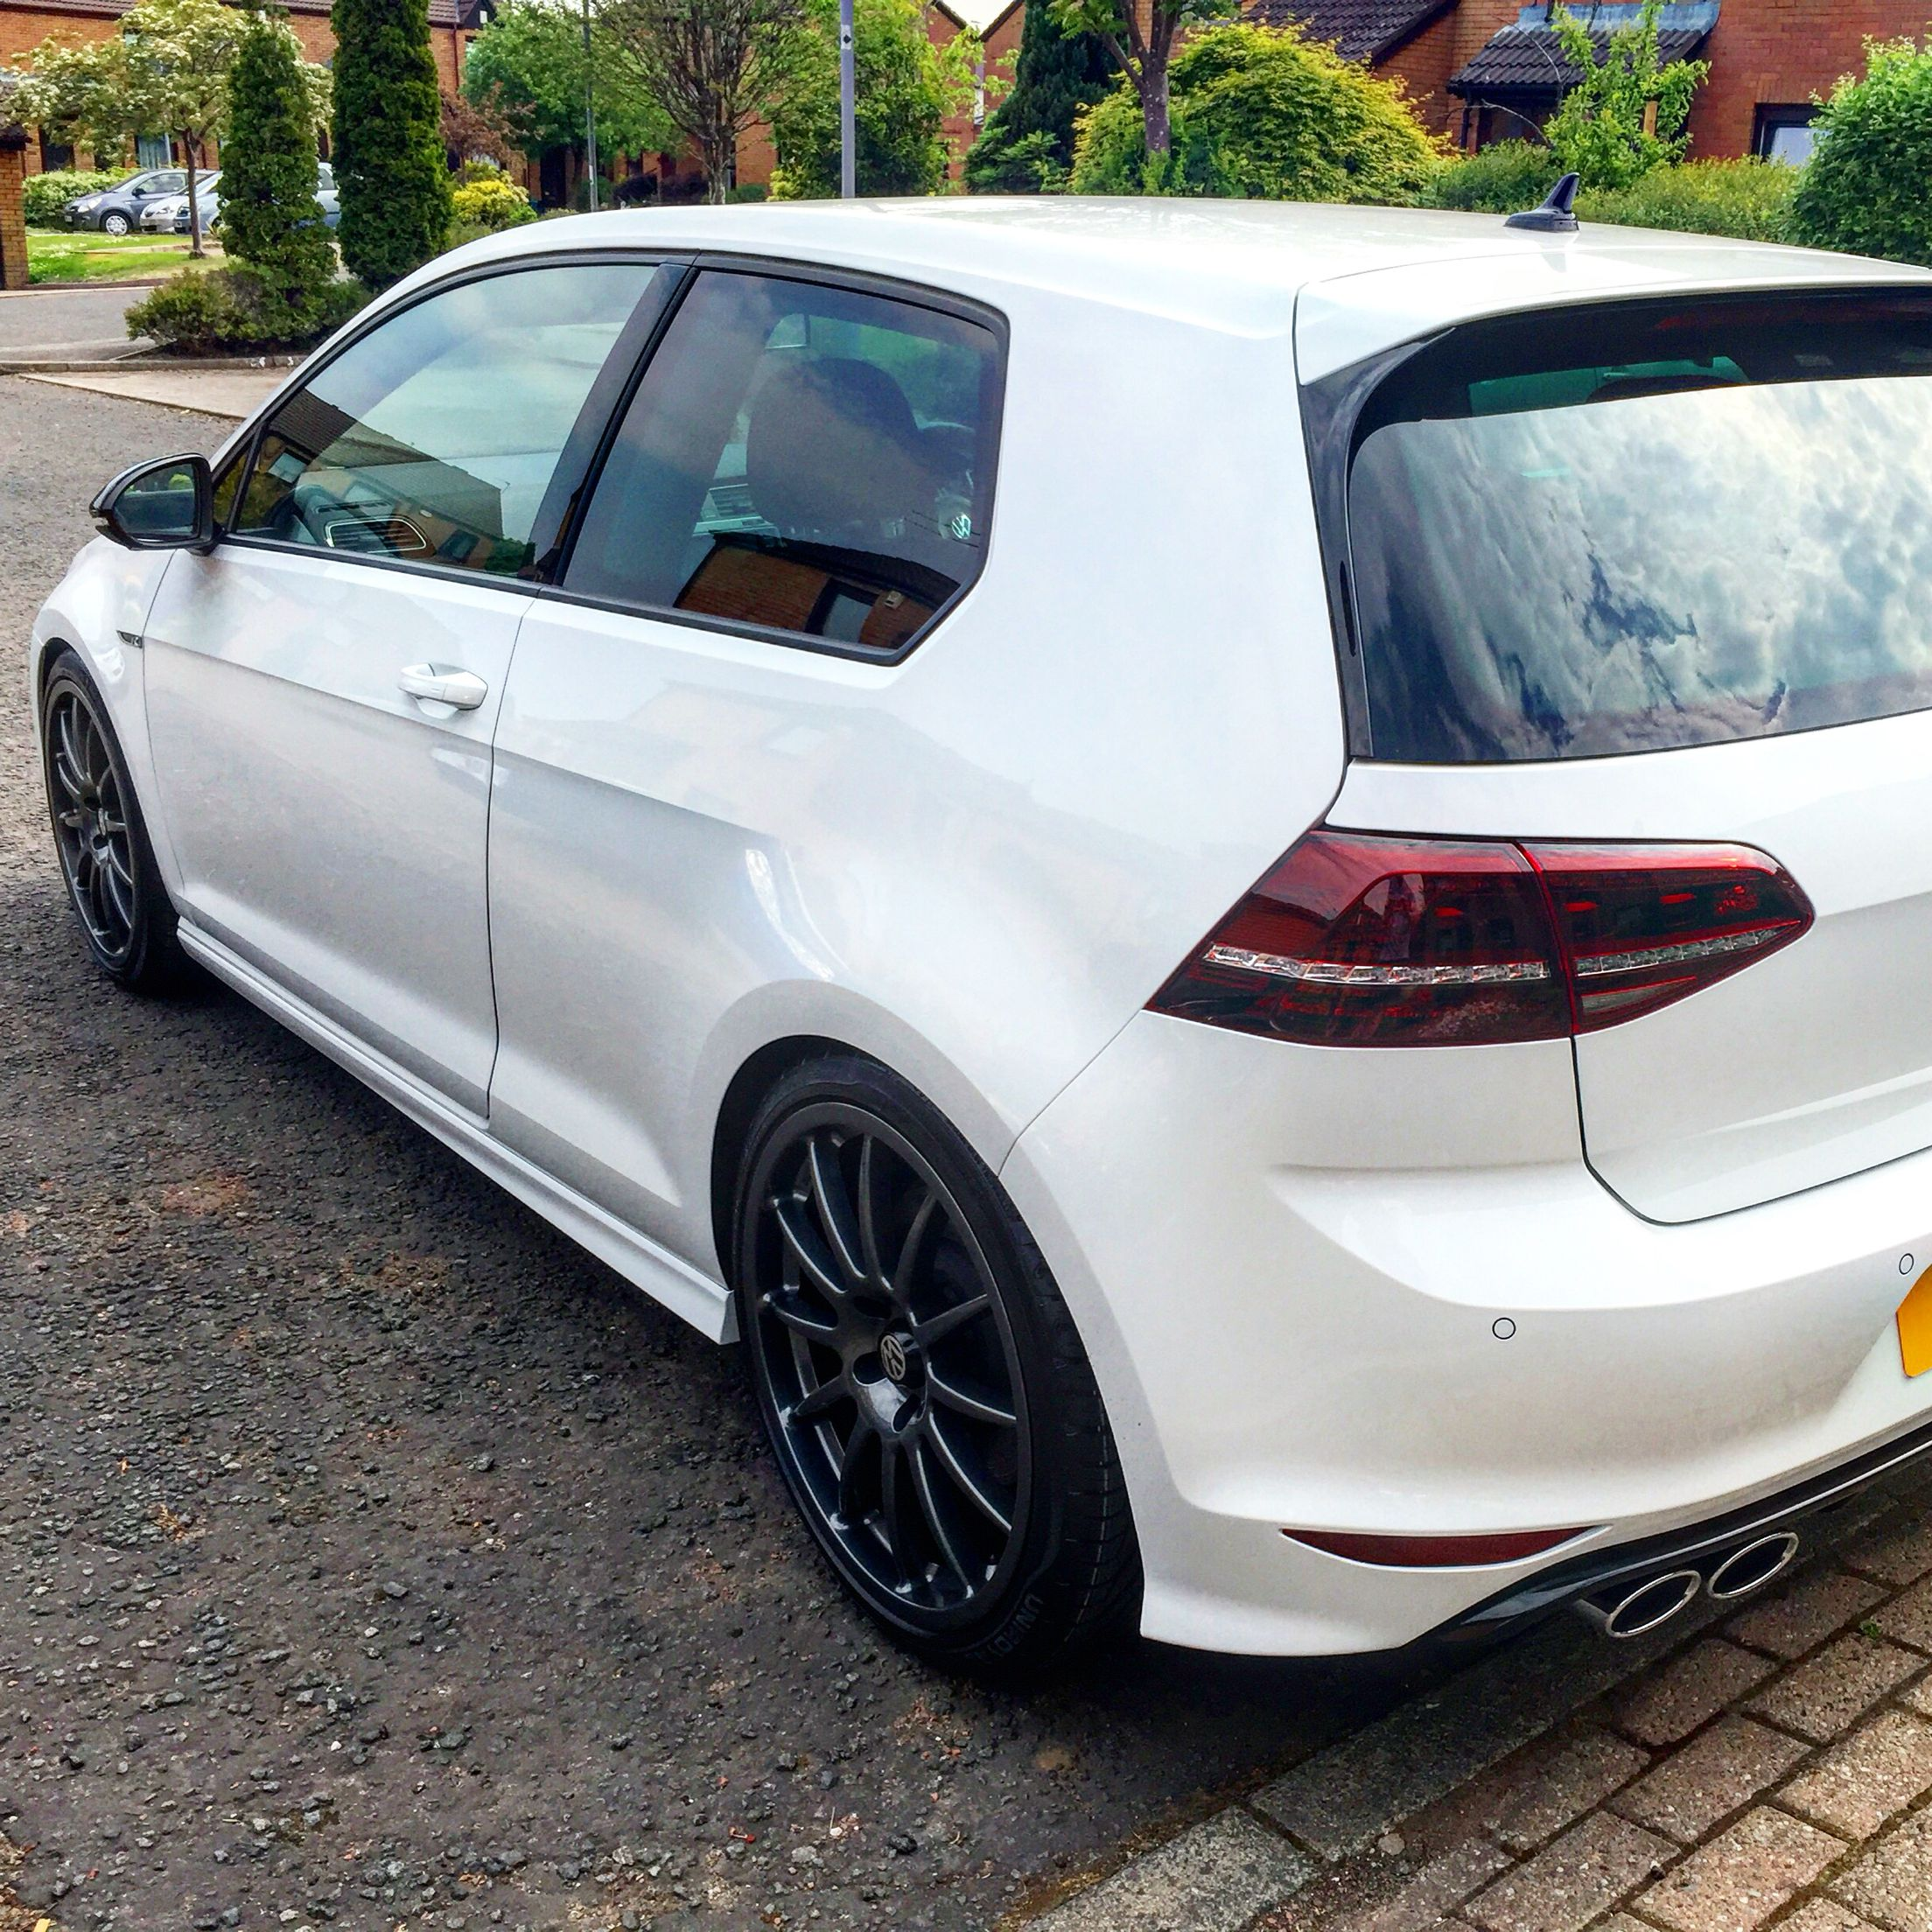 Volkswagen Golf R: 2015 Oryx White Golf R With Team Dynamics Pro Race 1.3